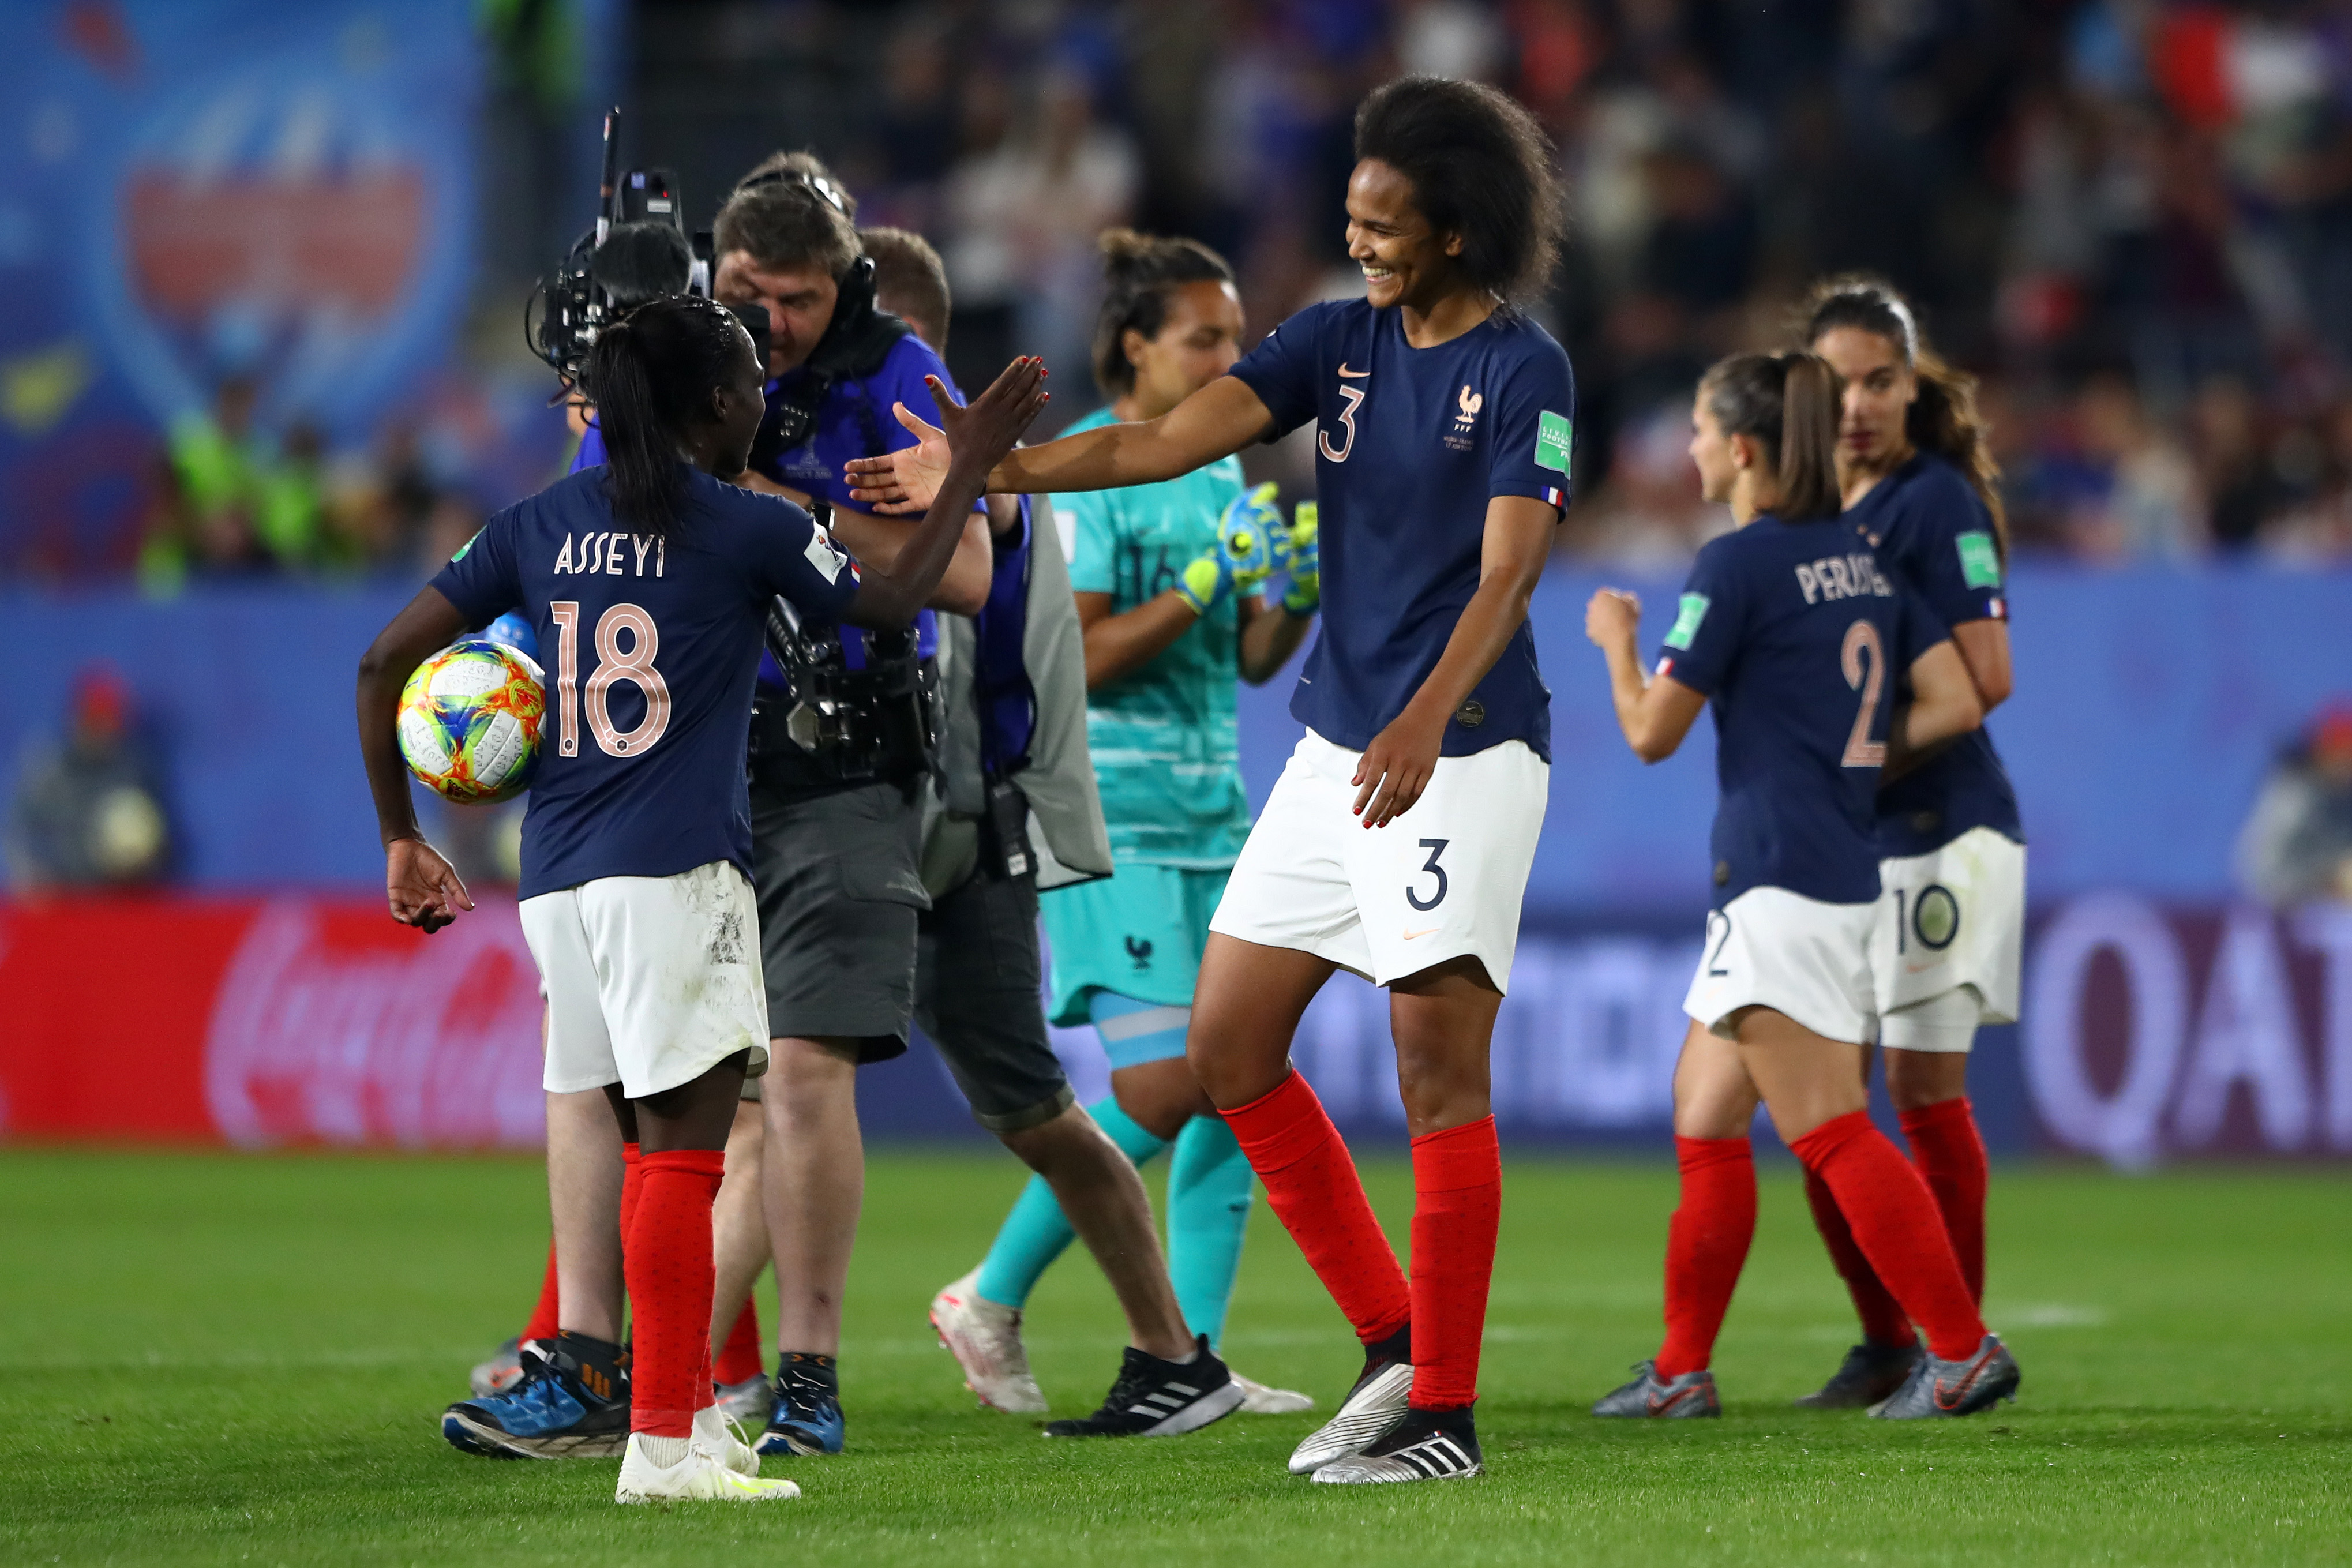 Nigeria v France: Group A - 2019 FIFA Women's World Cup France